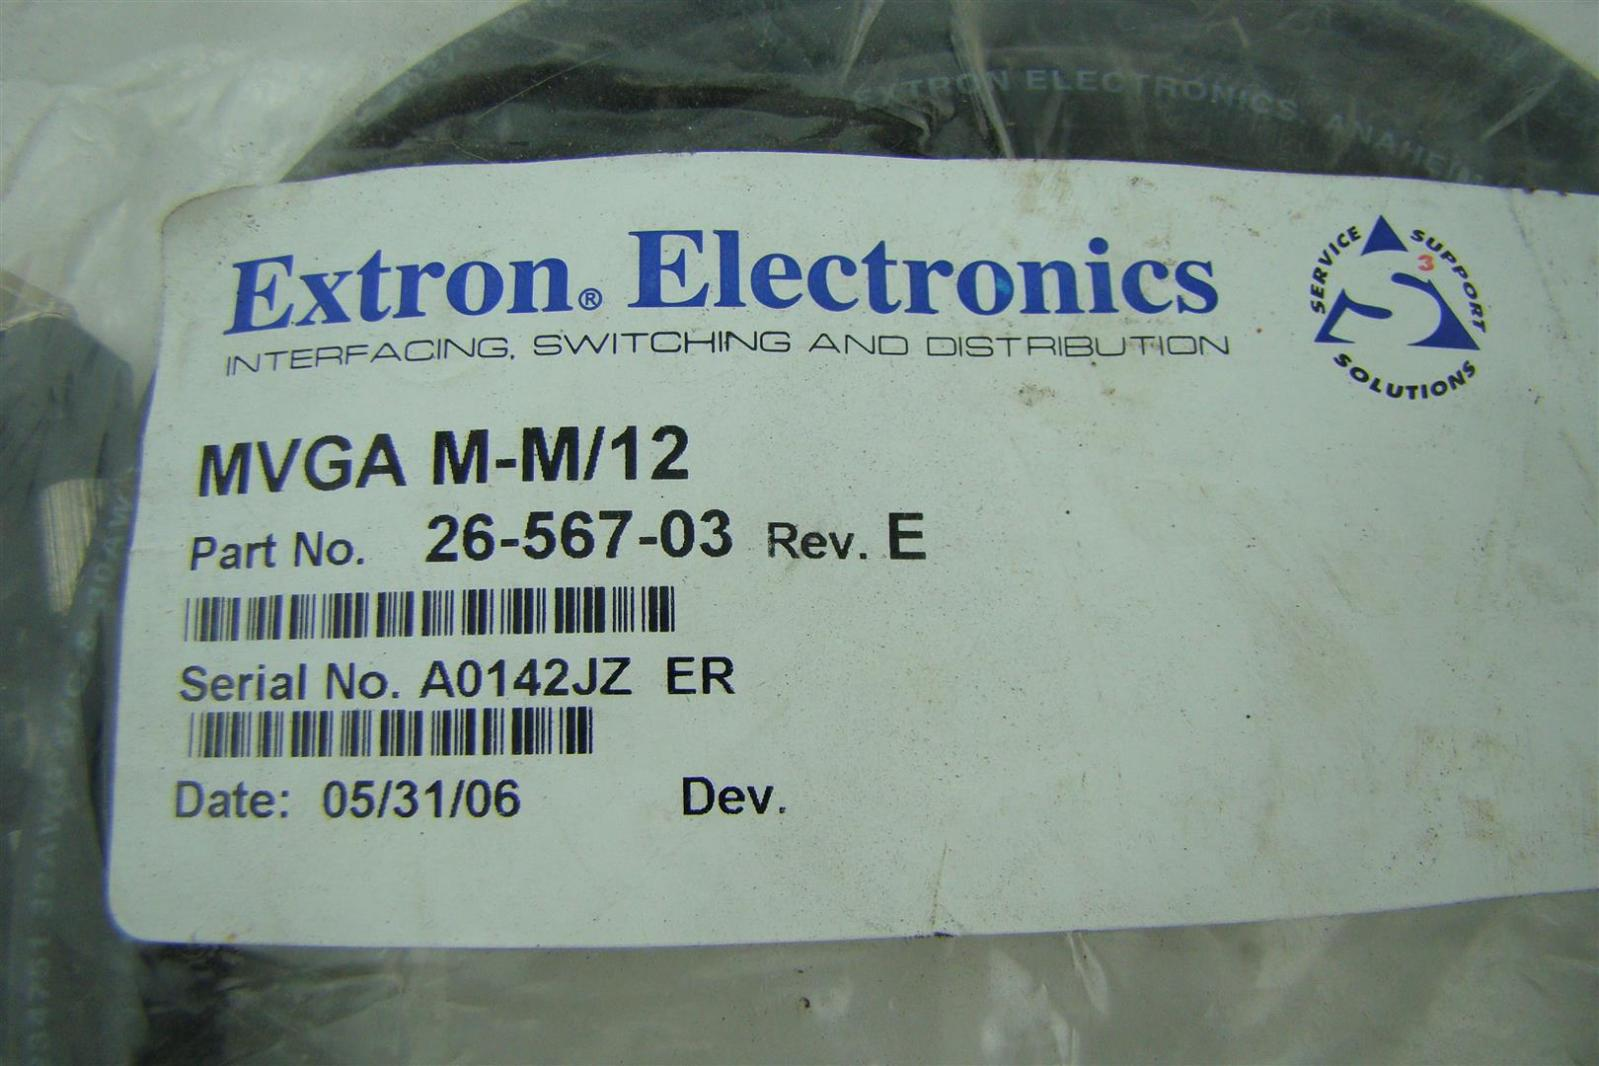 Details about Extron Electronics, Mvga M-M/12' , E234751 32Awg 3/C & 30Awg  15/C Awm Style 2027